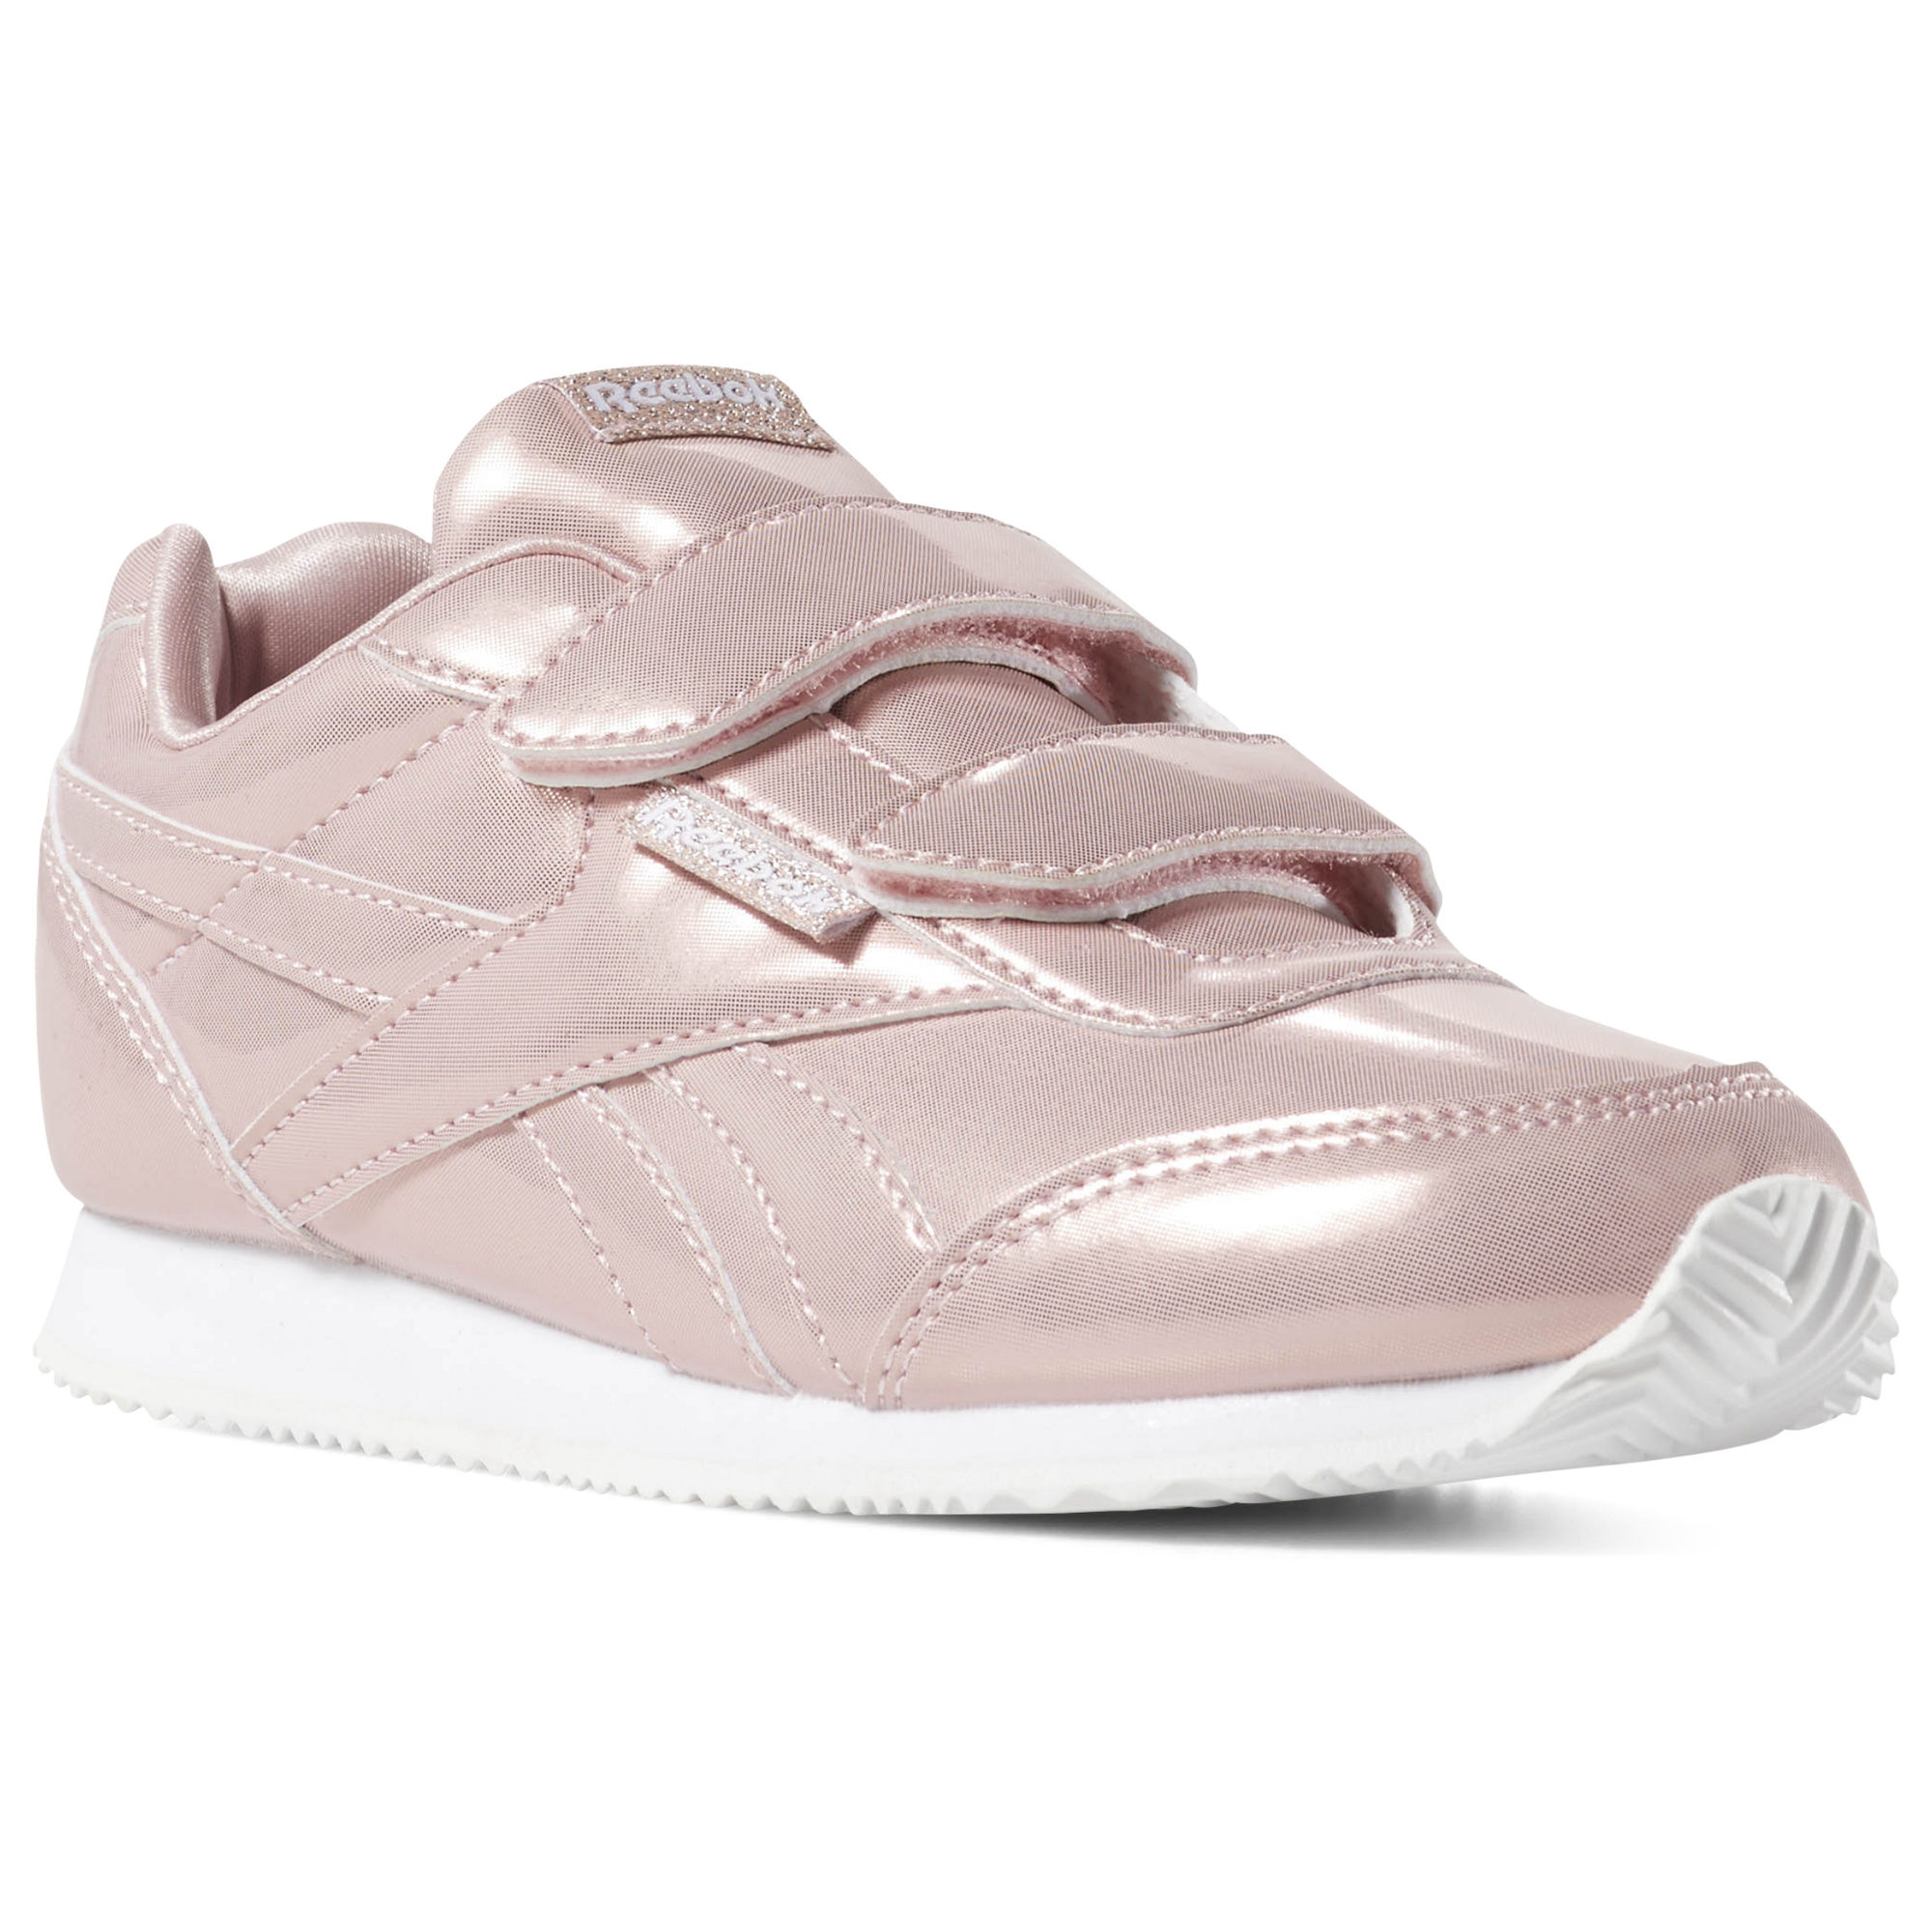 Reebok Royal Classic Jog 2 Girls Pink/White Sneakers (511GRAHK)